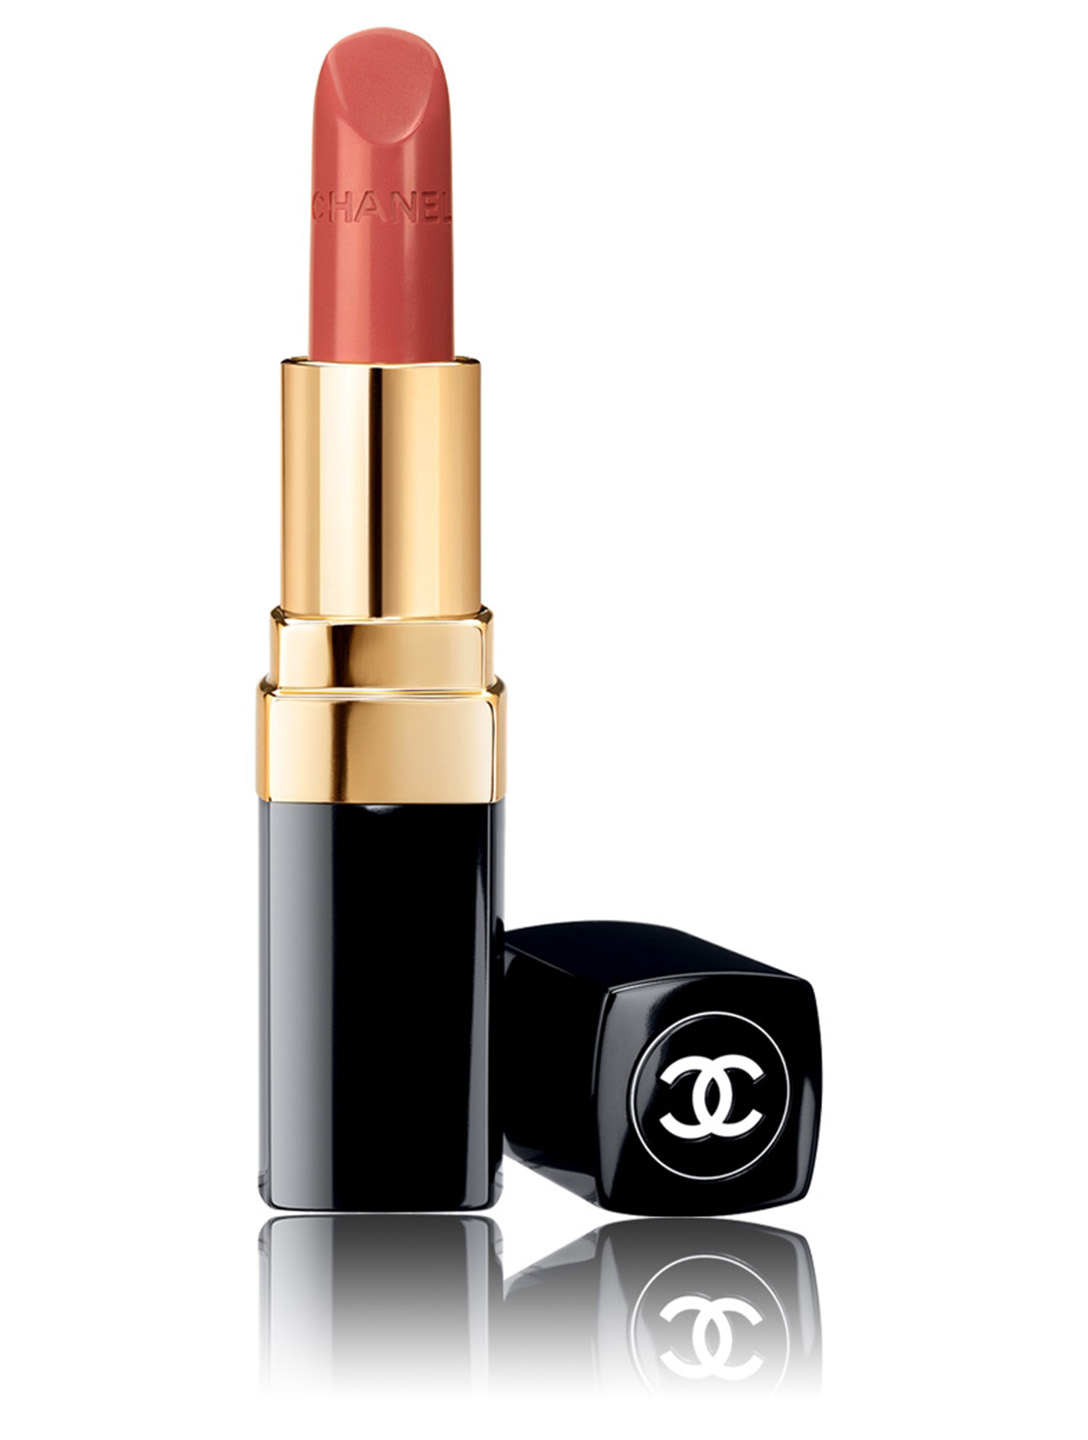 CHANEL Le rouge hydratation continue CHANEL Écru